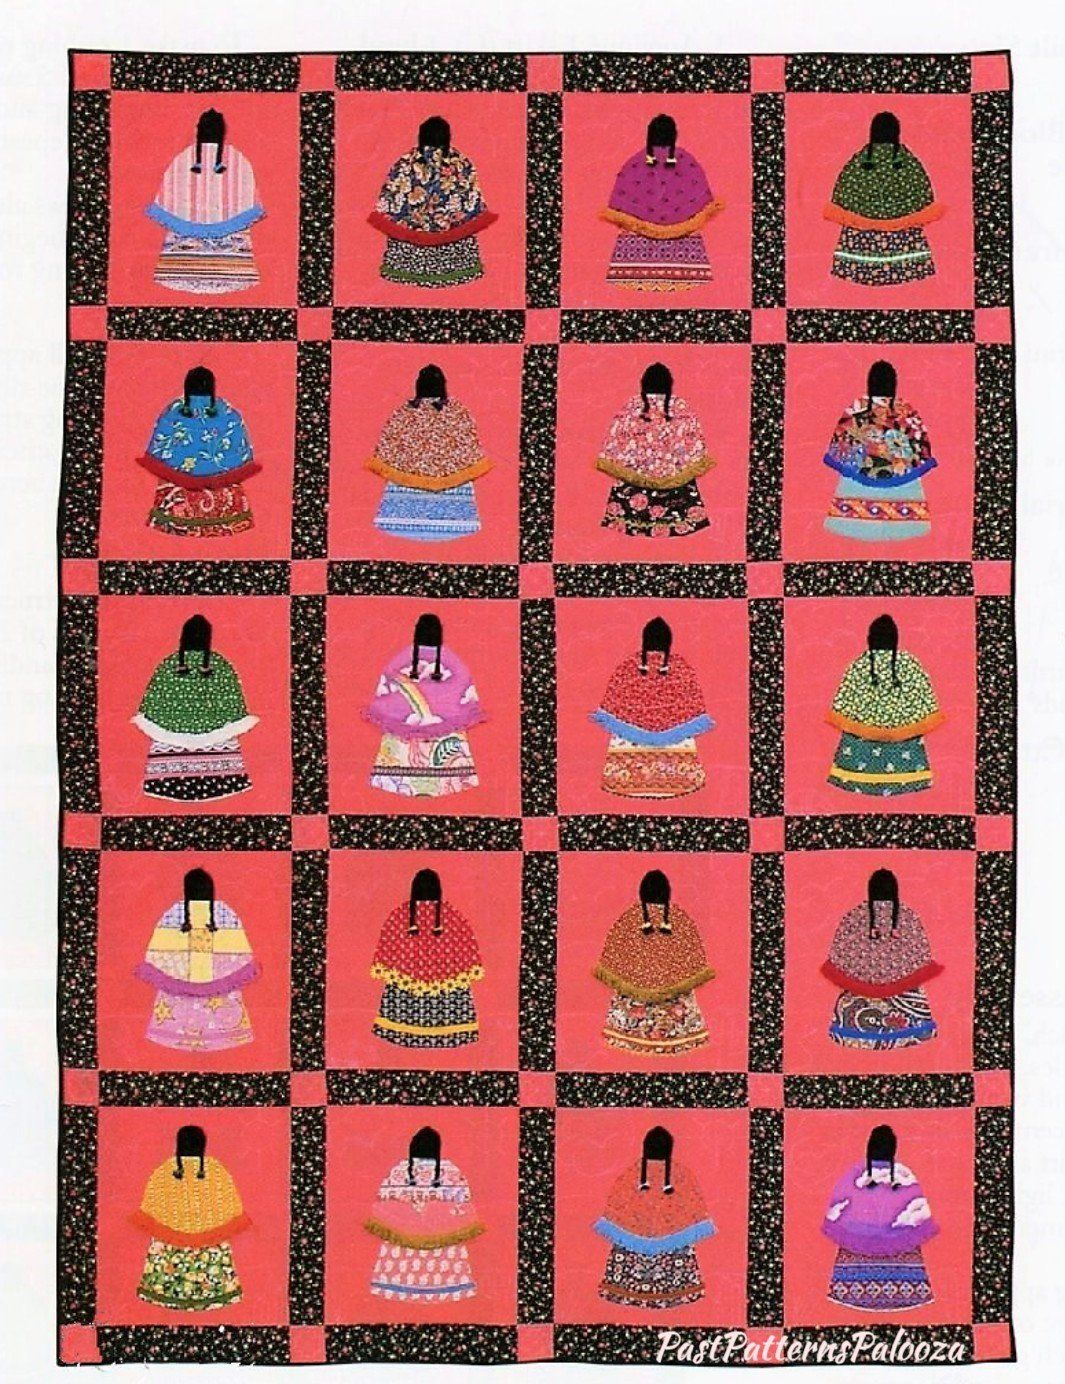 Vintage Sewing Pattern Native American Little Indian Girls Bed Quilt PDF Instant Digital Download Patchwork Applique Block Sunbonnet Variant #indianbeddoll Vintage Sewing Pattern Native American Little Indian Girls Bed Quilt PDF Instant Digital Download Patchwork Applique Block Sunbonnet Variant #indianbeddoll